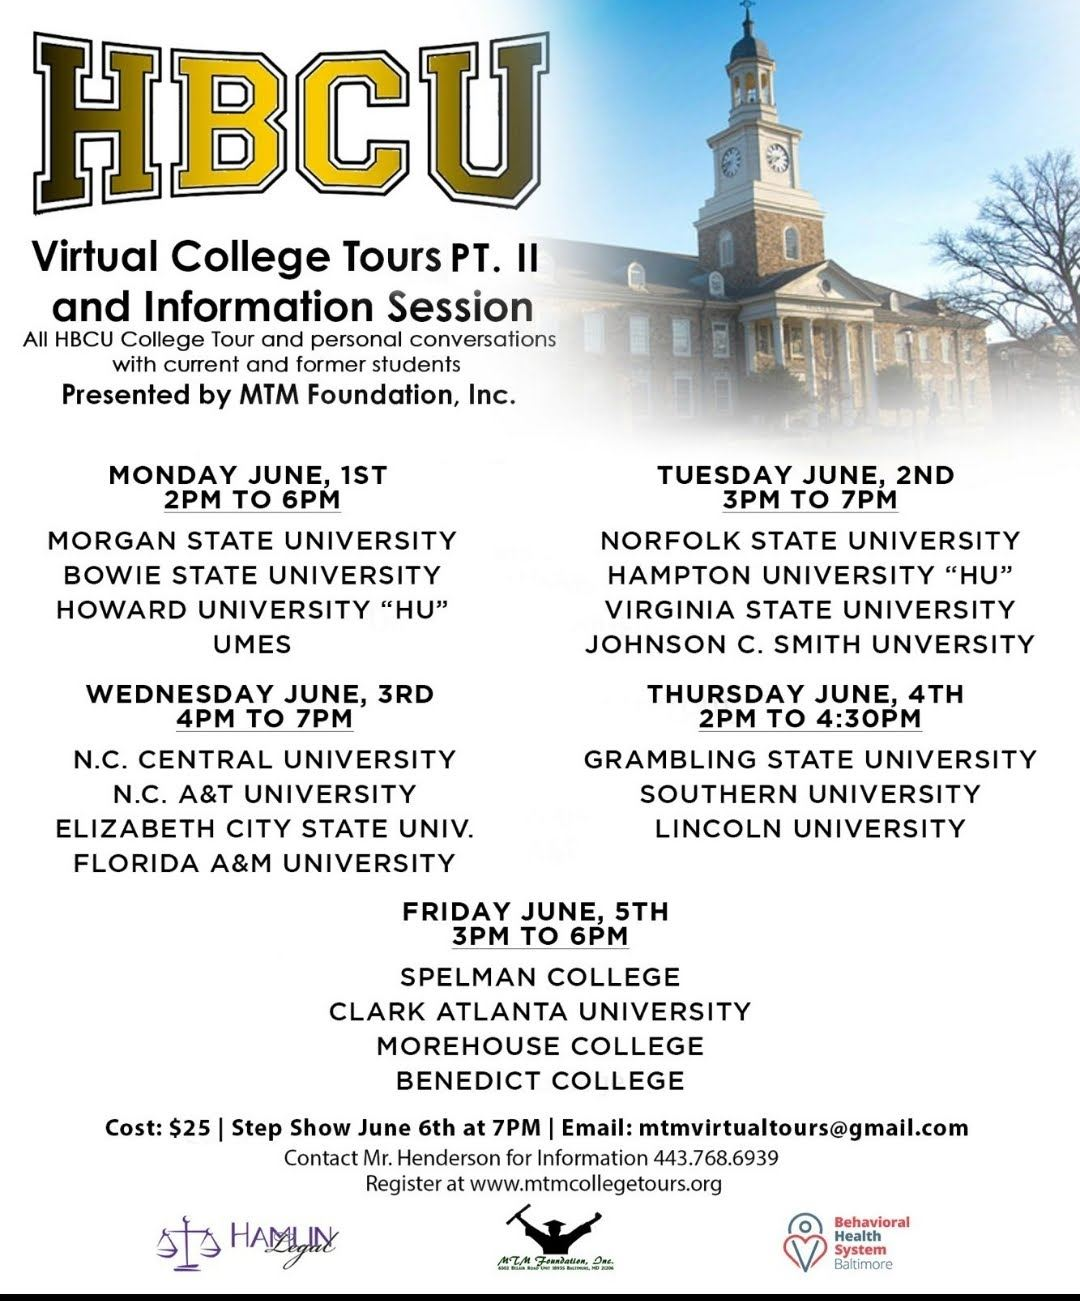 HBCU Virtual College Tour Part 2, June 1- June 6